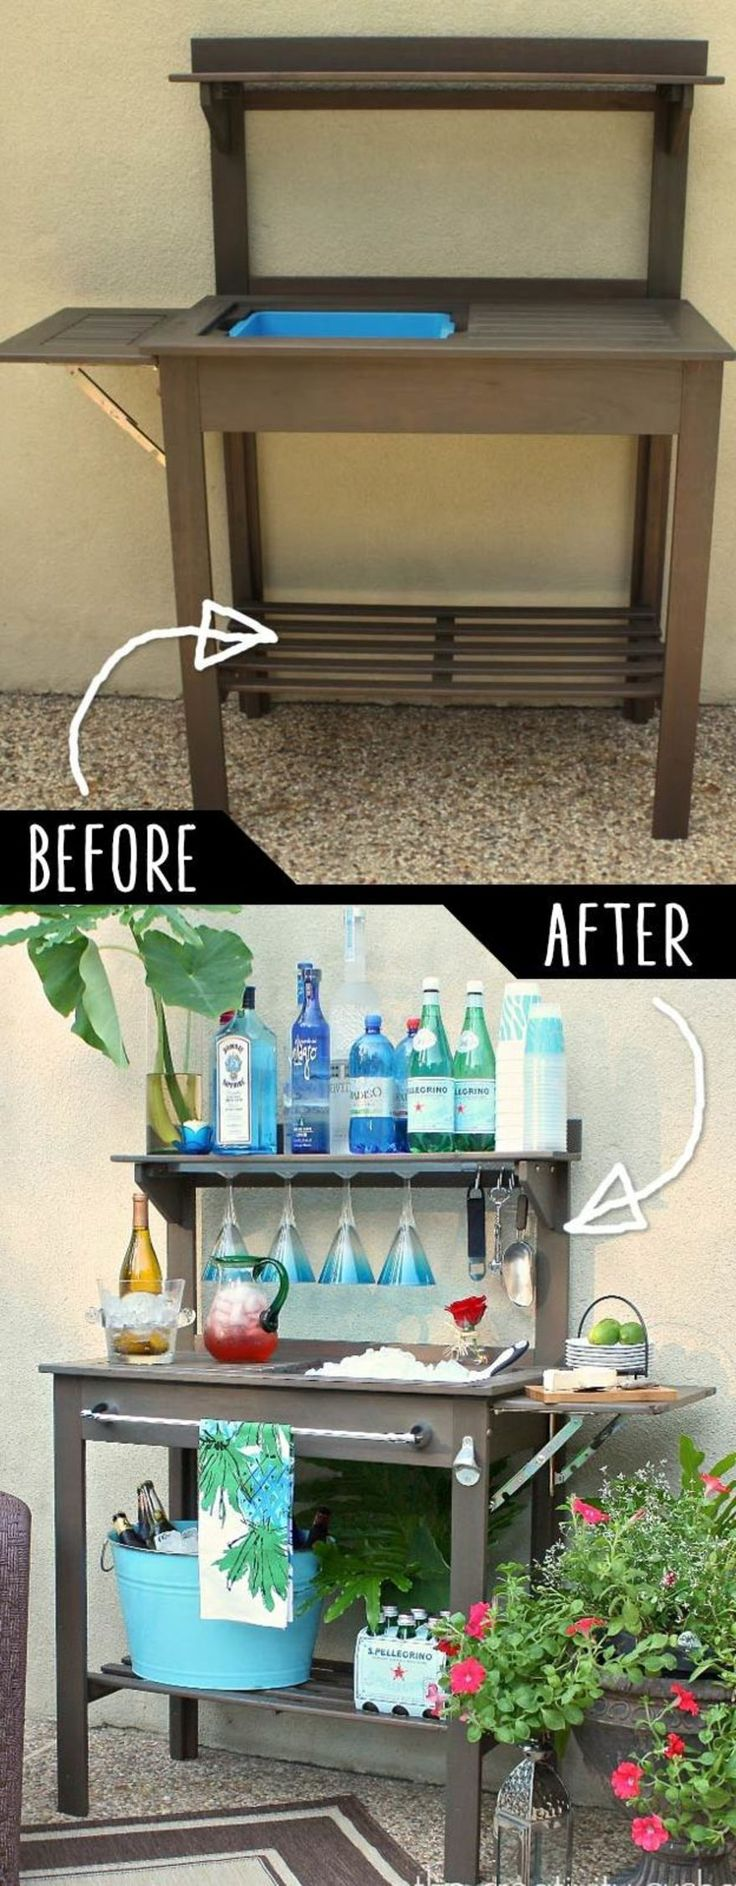 5 Turn A Potting Bench Into A